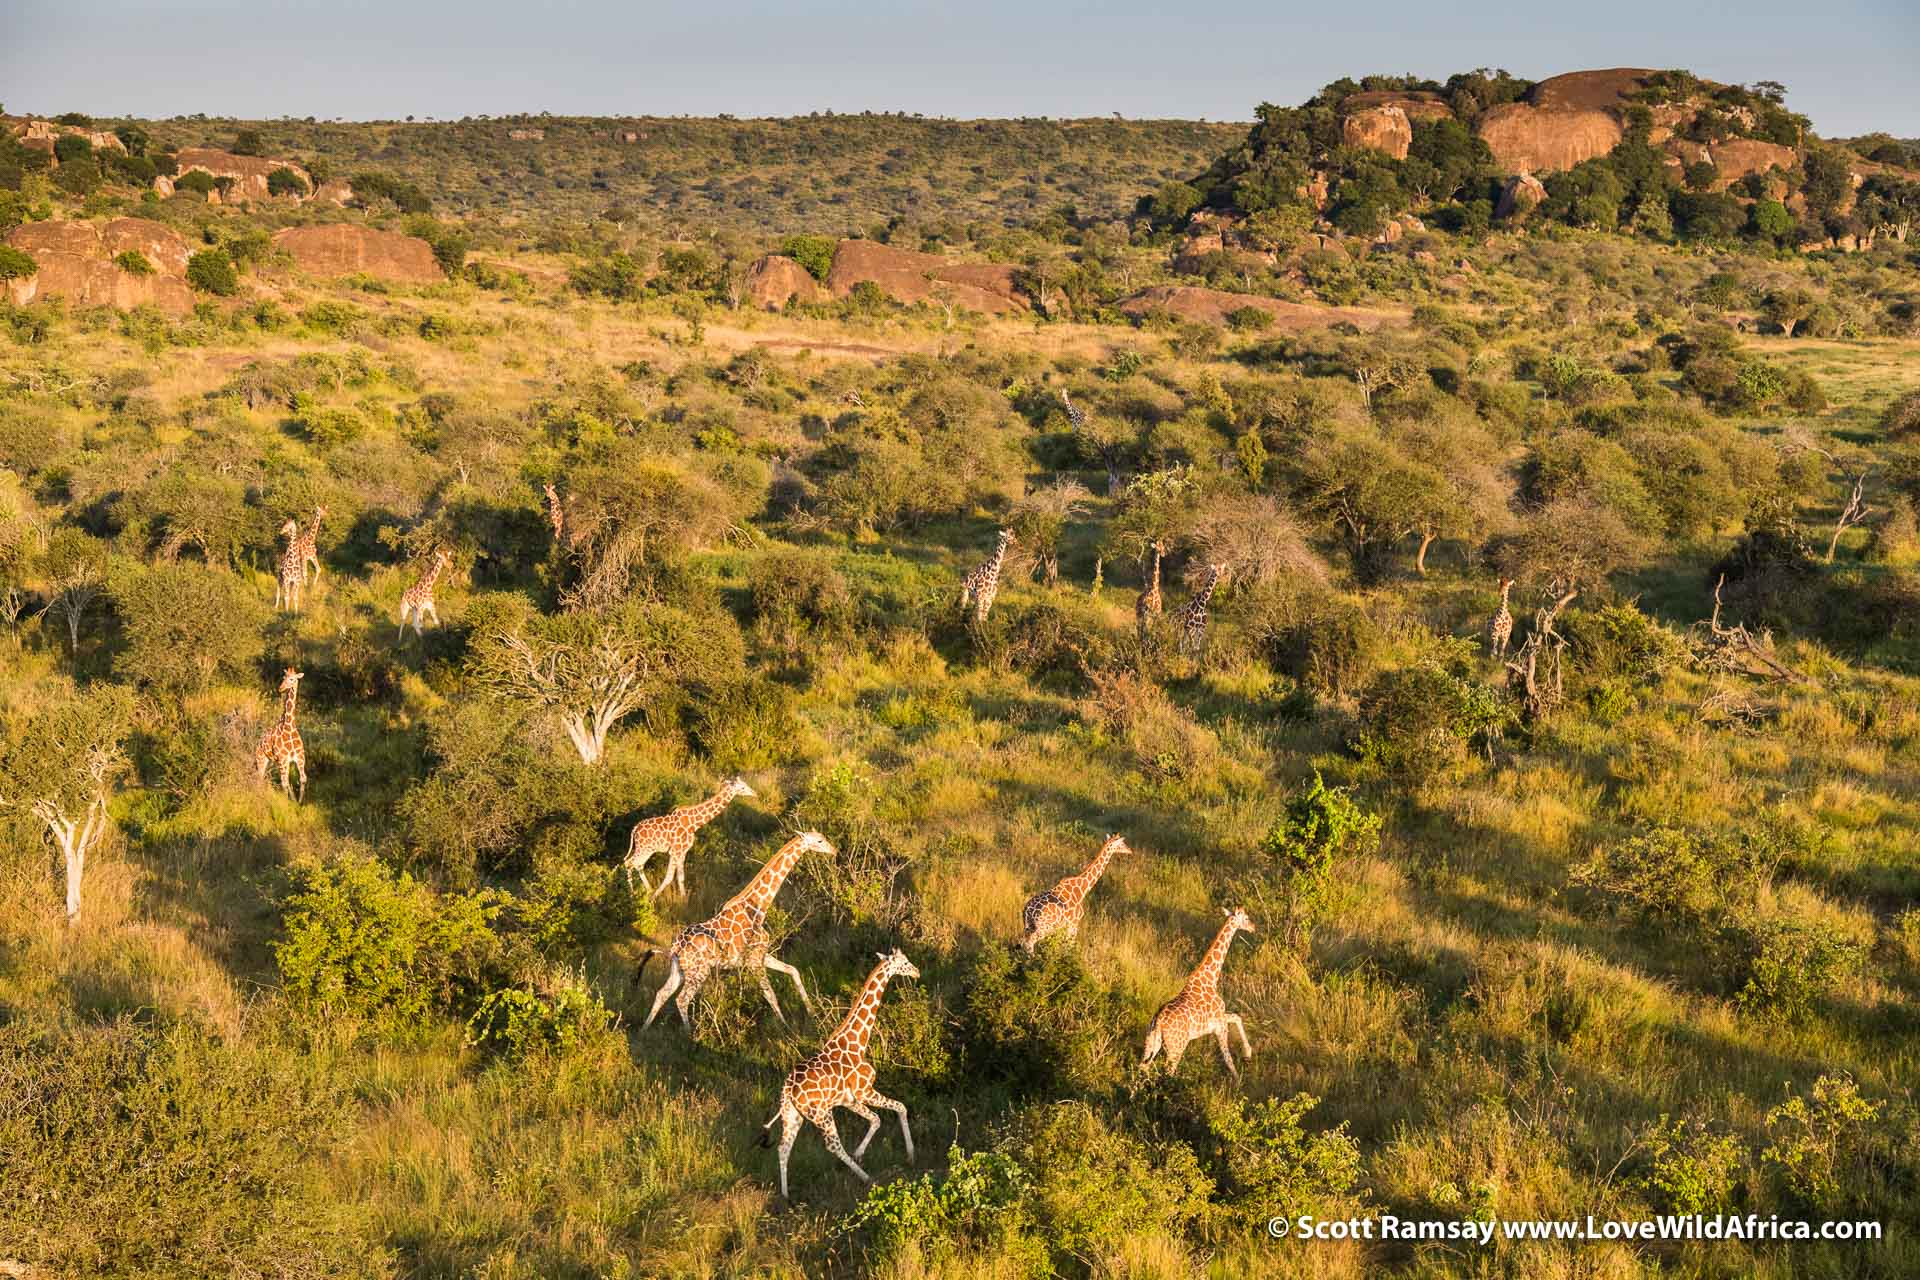 Reticulated giraffes, photographed from the chopper